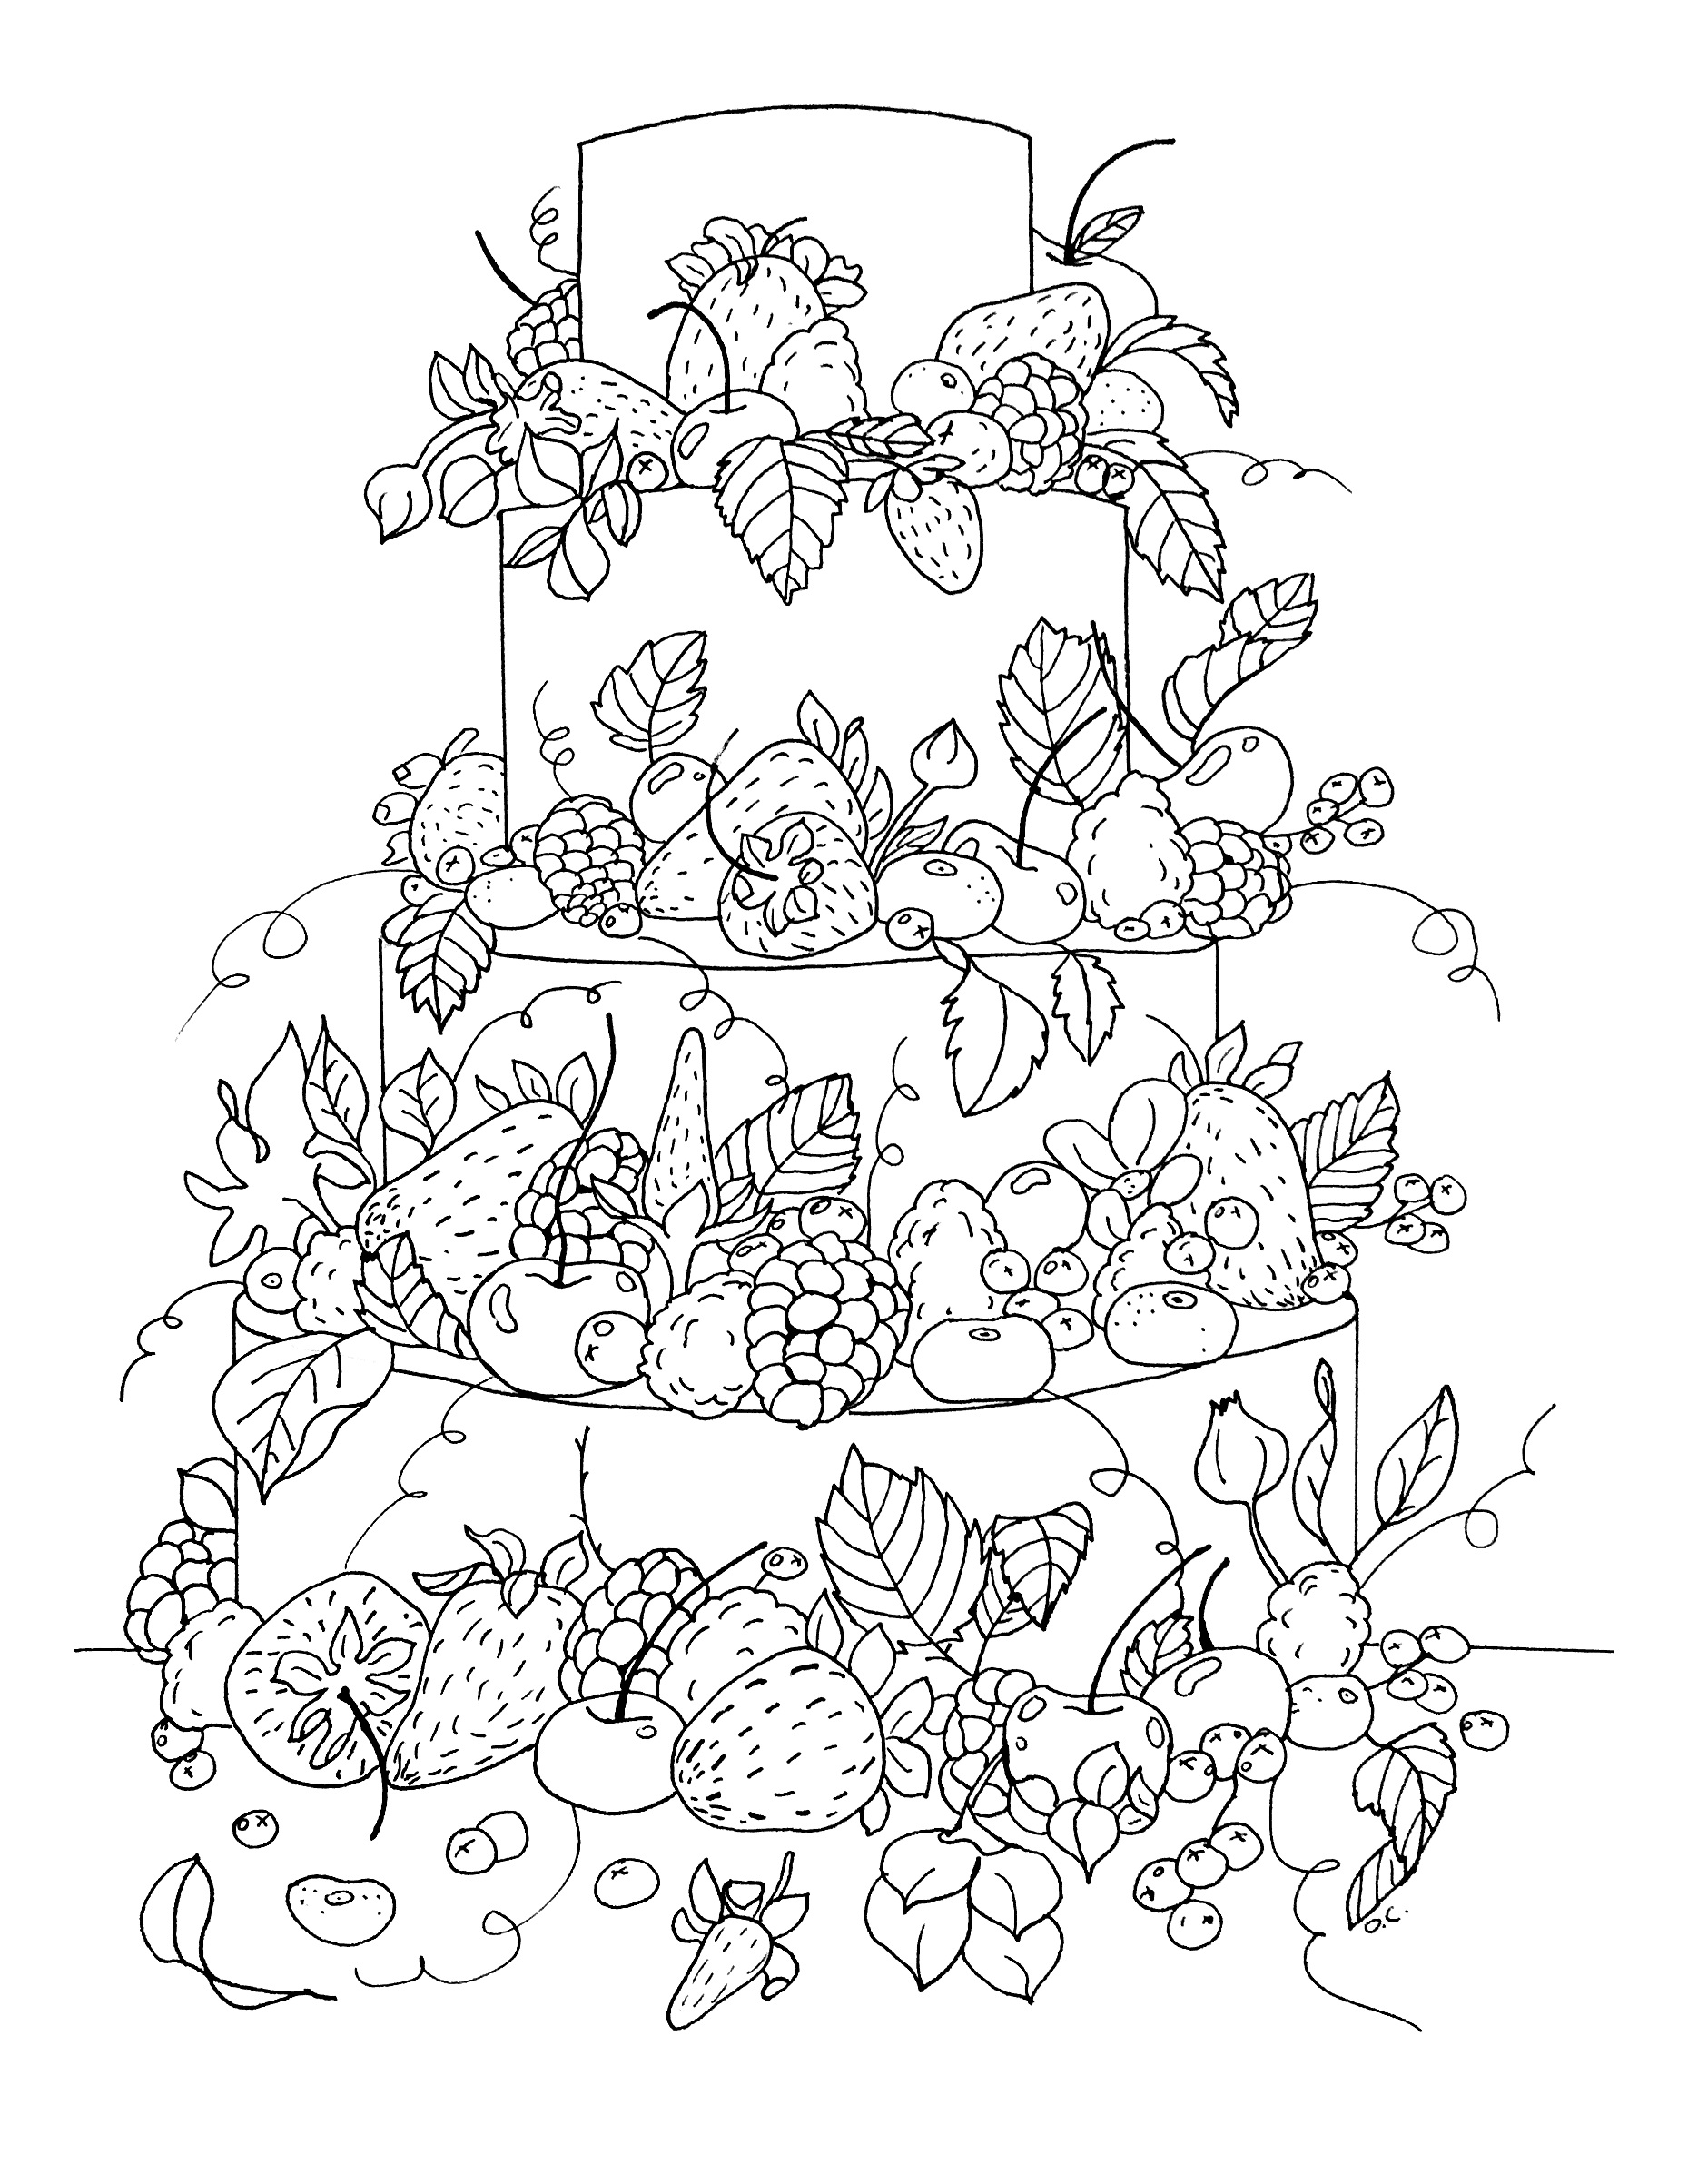 Cup cakes coloring pages for adults coloring big fruit Giant coloring books for adults